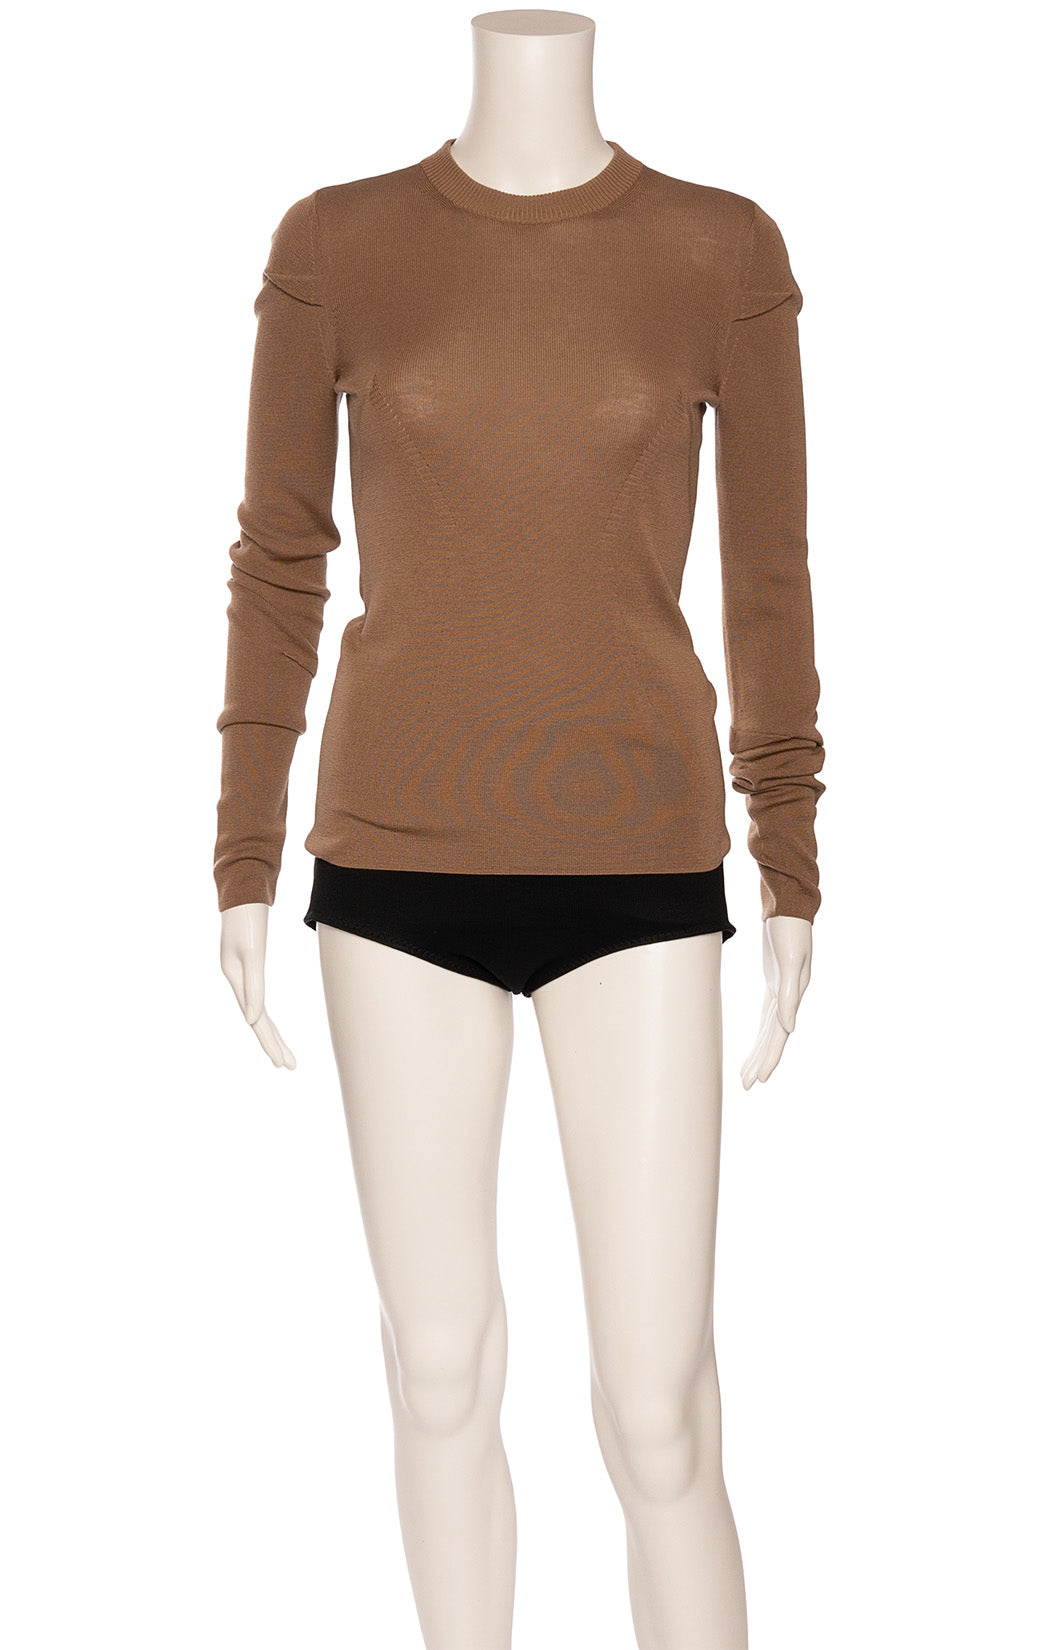 ALEXANDER WANG with tags Sweater  Size: Small